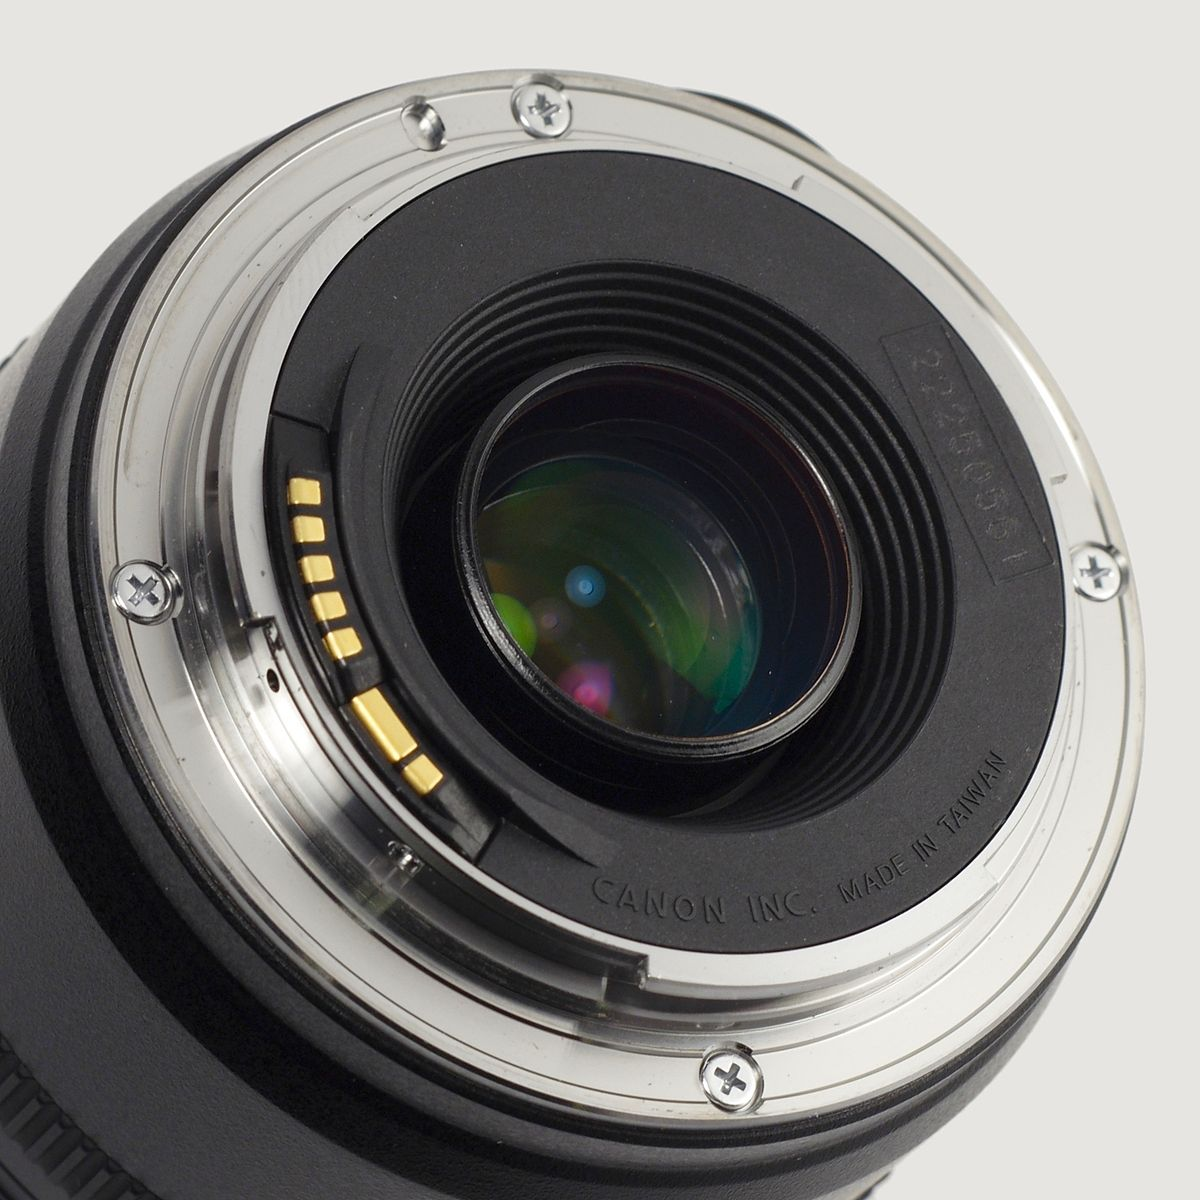 Canon Ef Lens Mount Wikipedia Push The Meter Into Black Mounting Flange From Back Until It